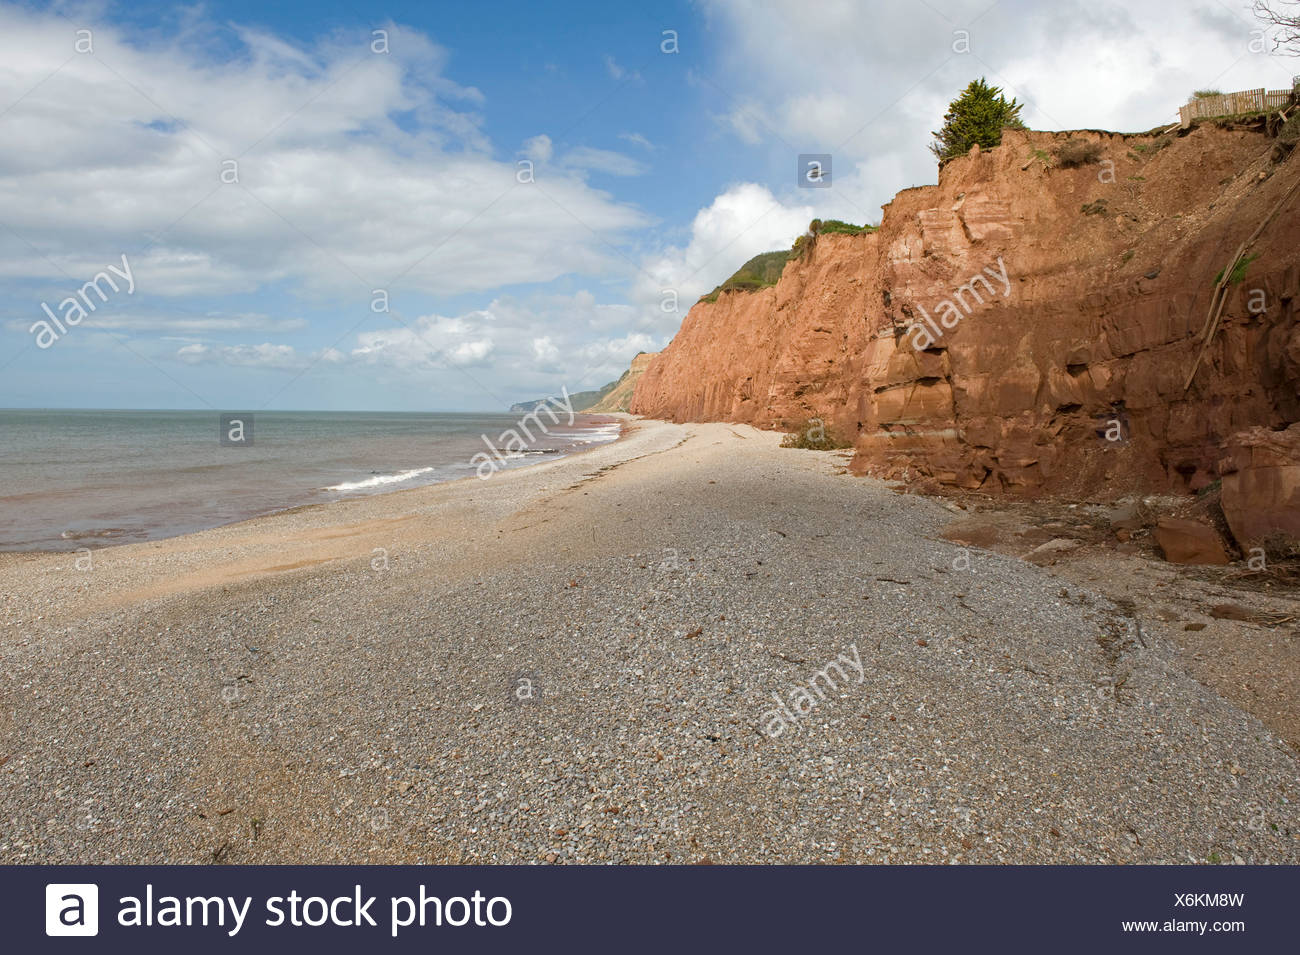 Crumbling red sandstone East Cliffs at Sidmouth which are being severely eroded by the sea - Stock Image